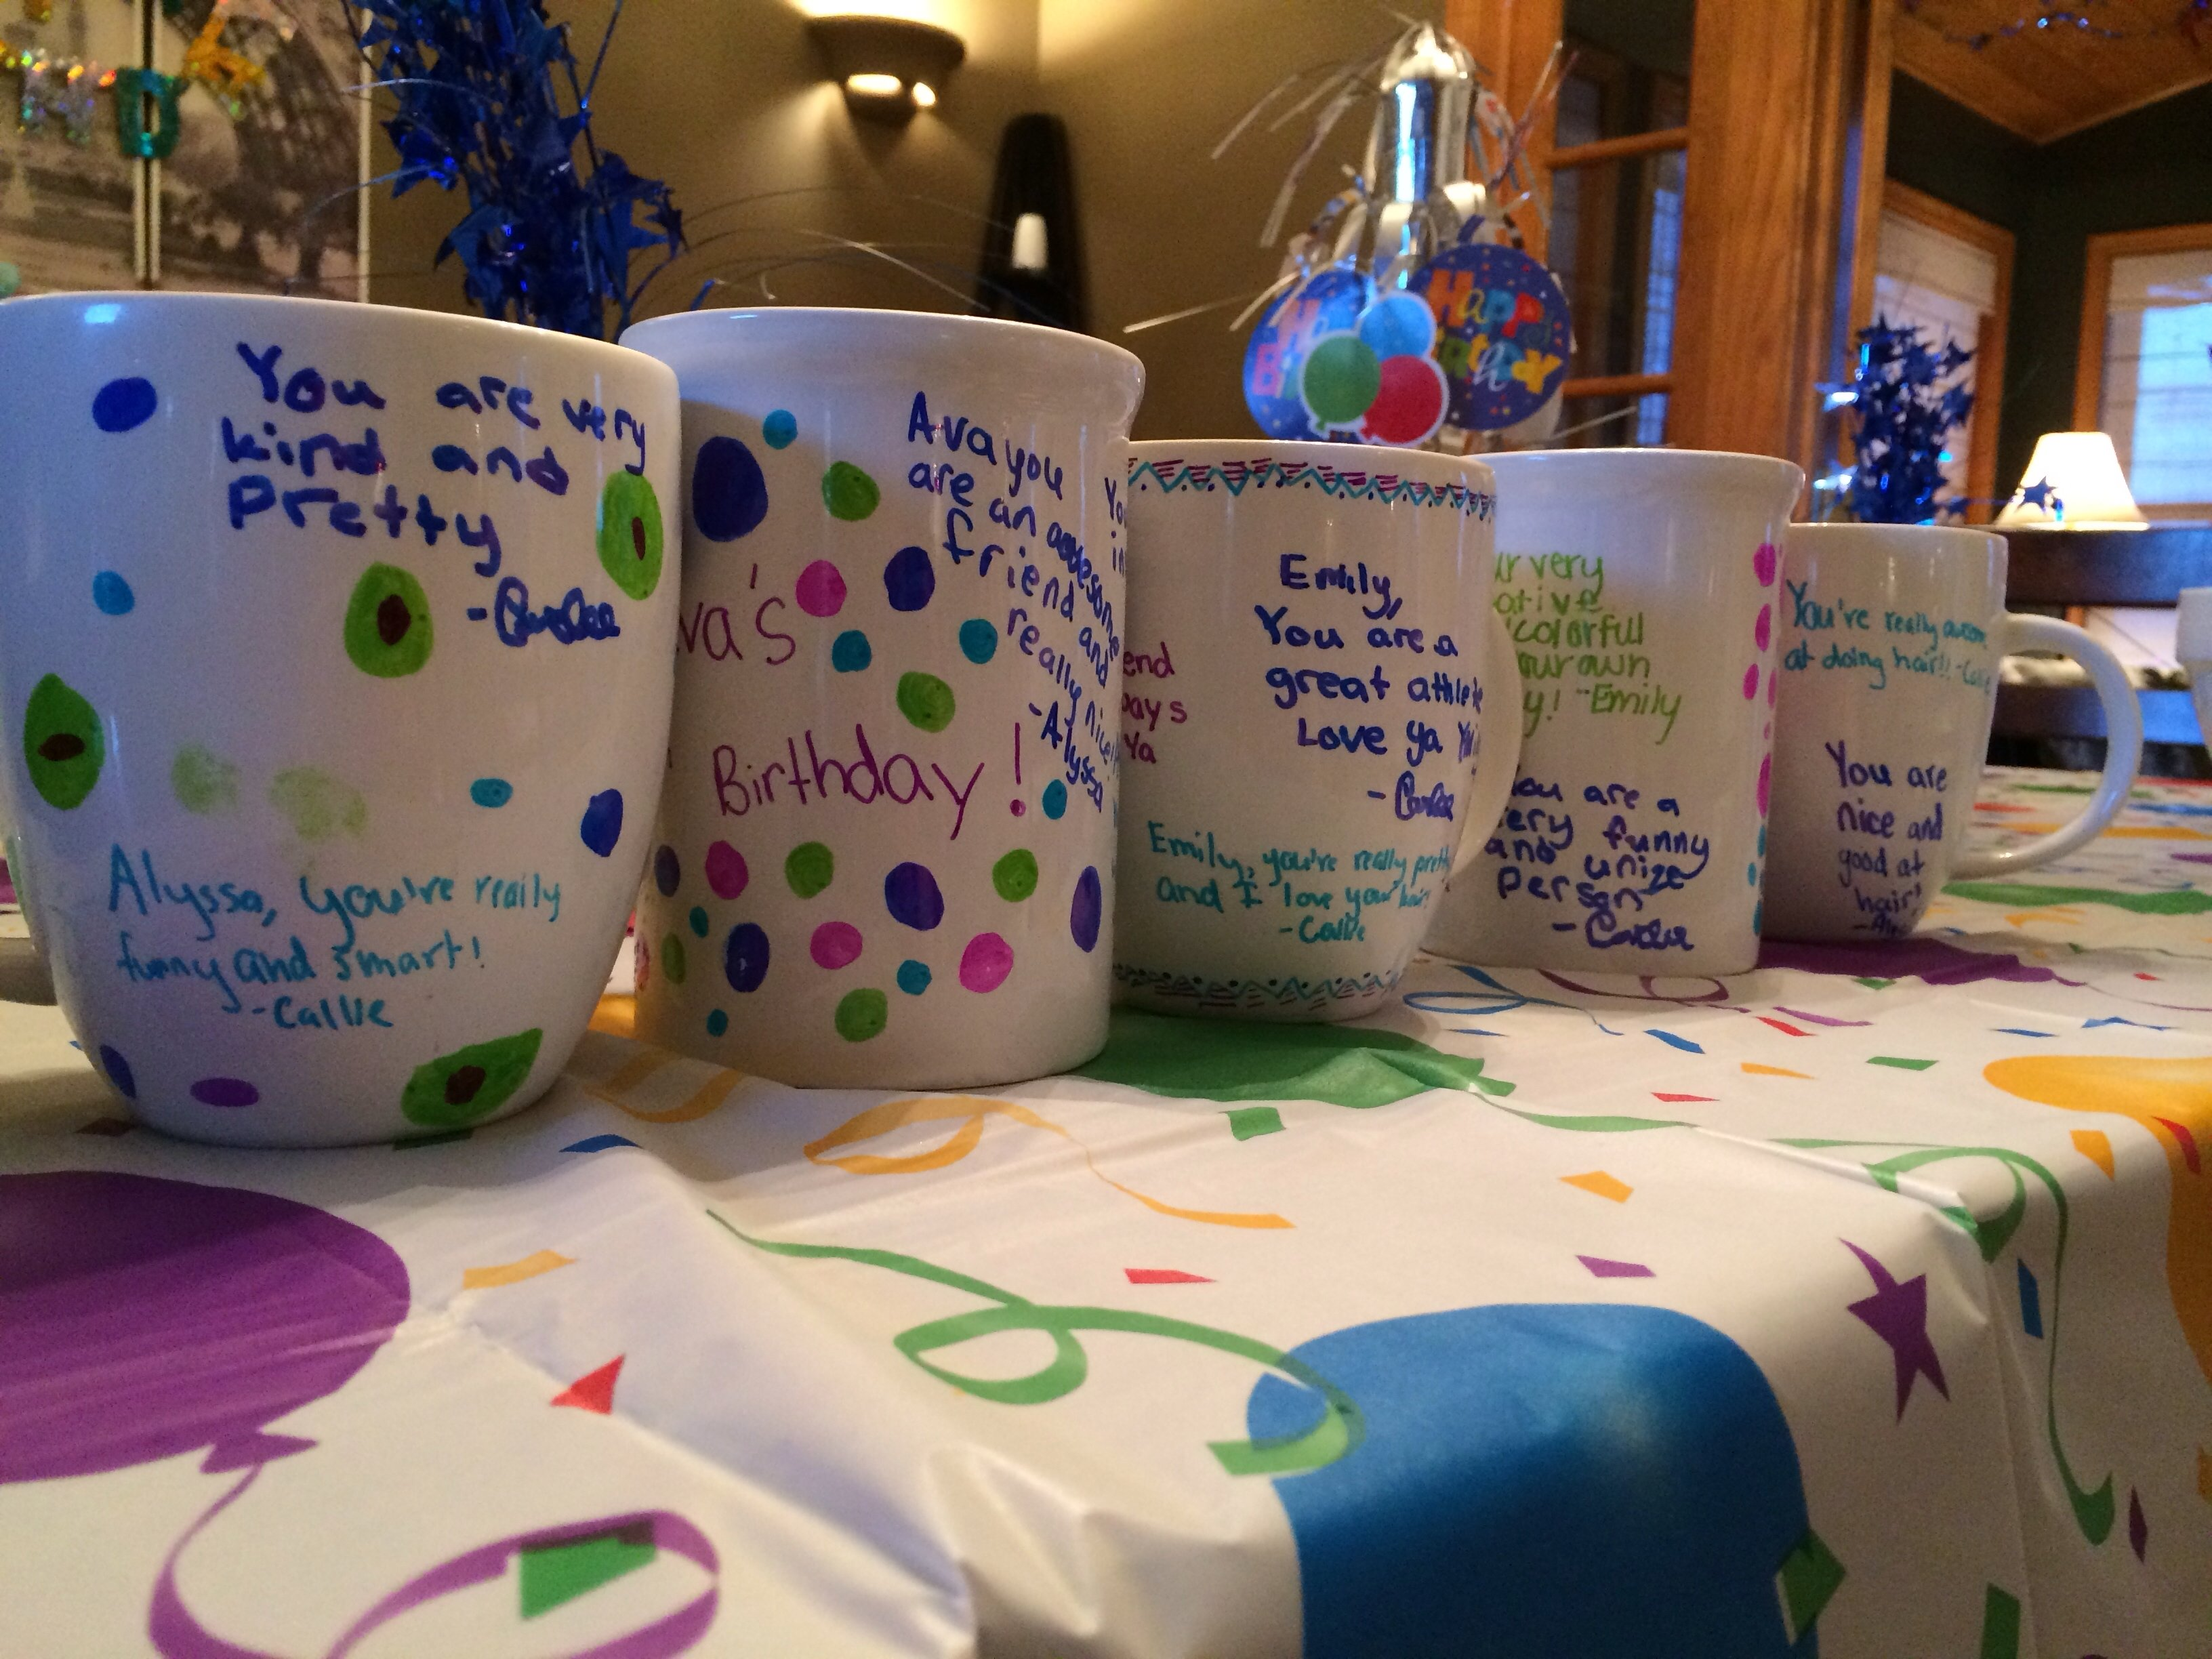 10 Cute Sleepover Ideas For 12 Year Olds party game ideas for 12 year olds wedding 1 2020